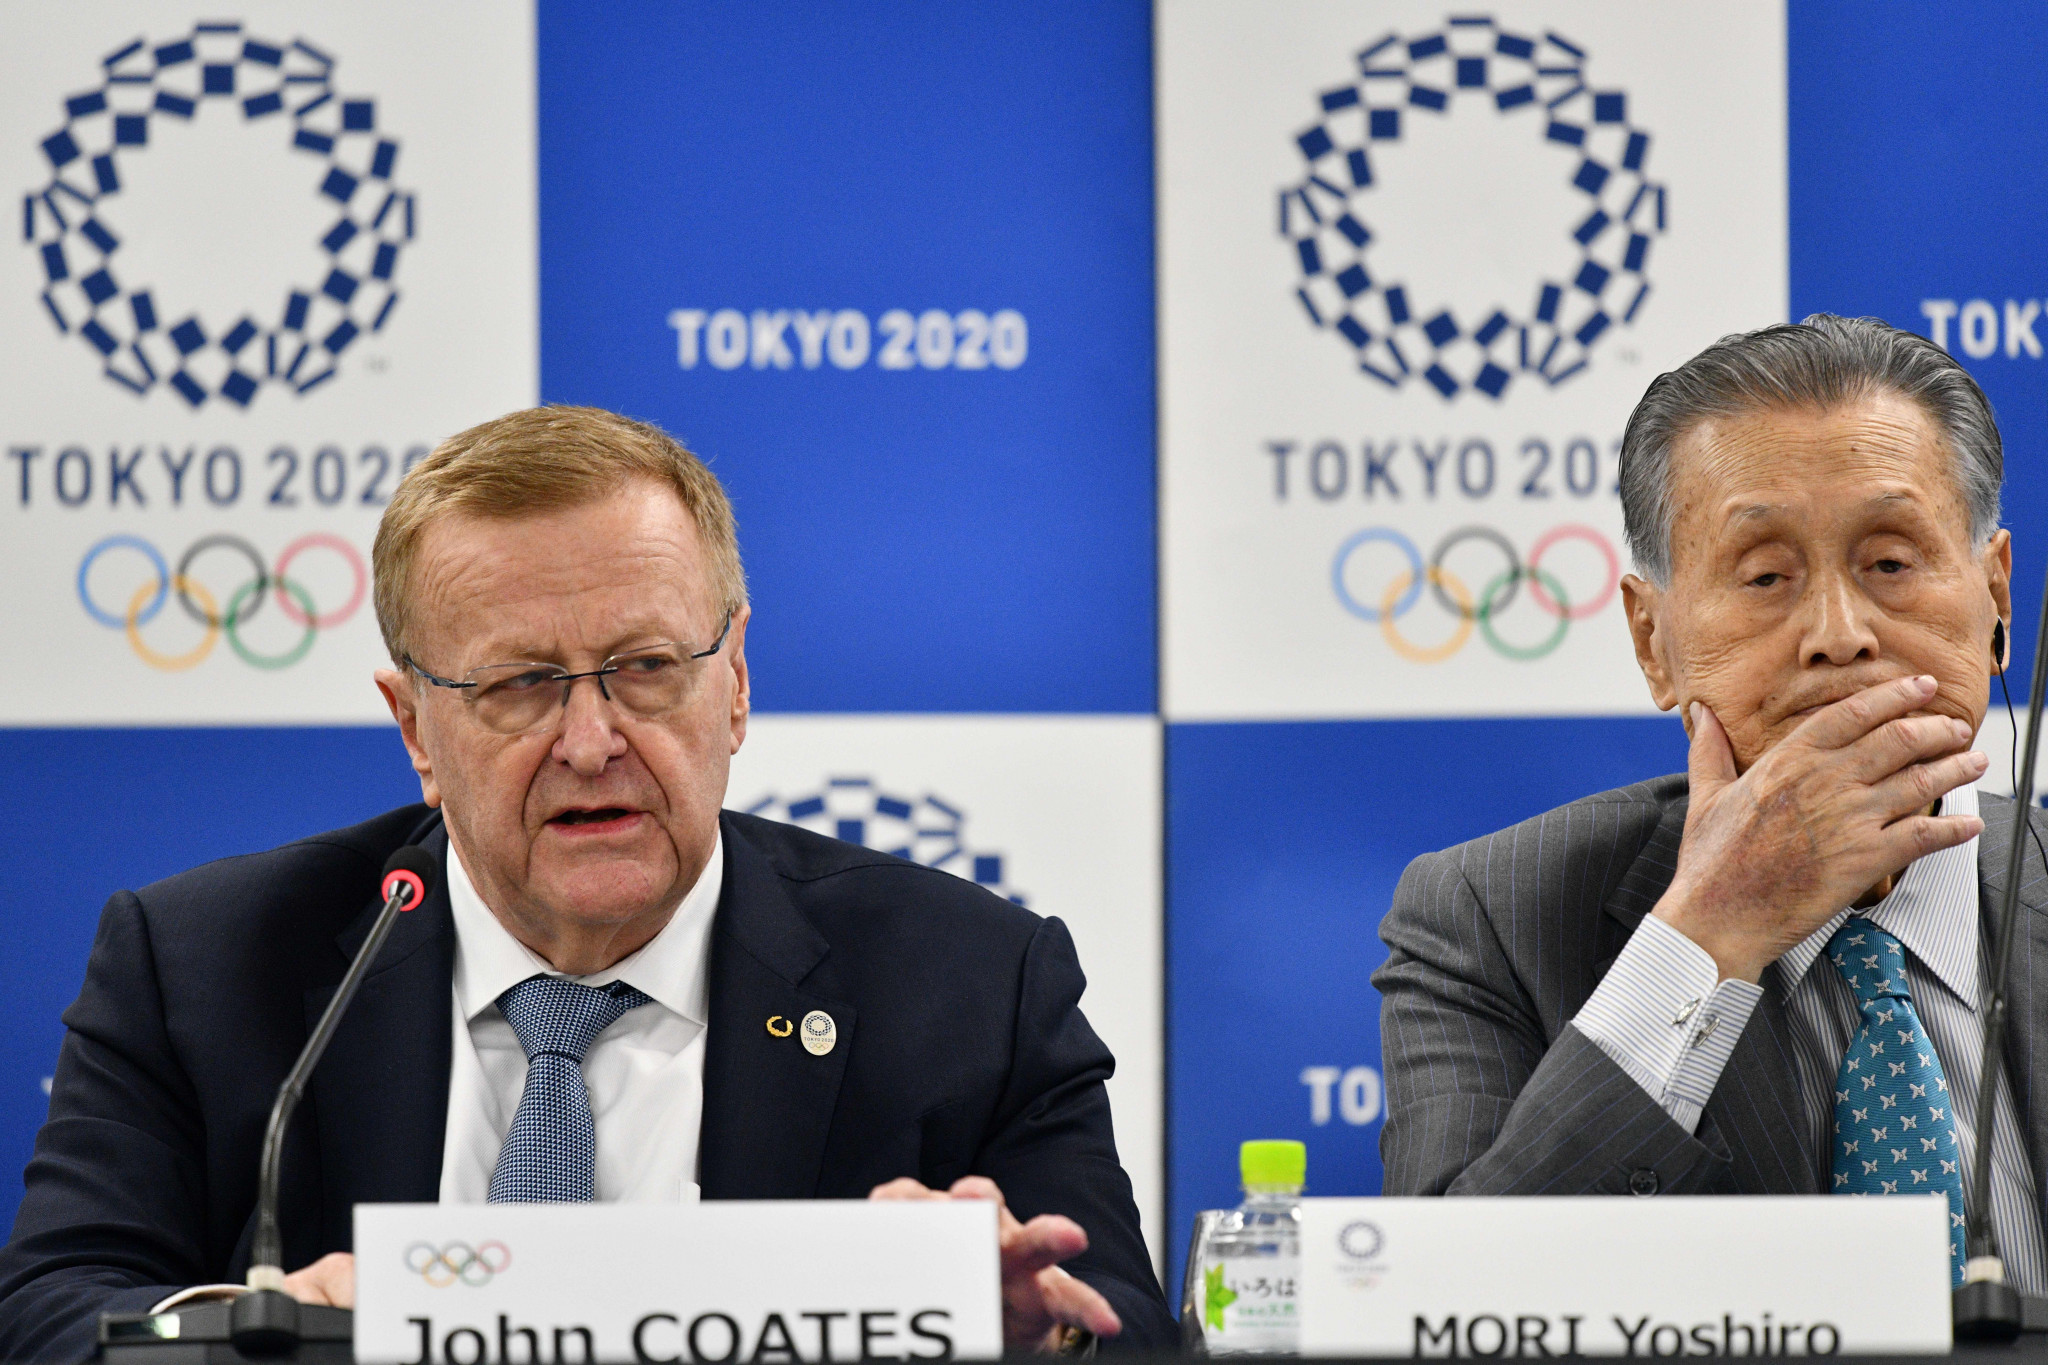 Coates suggests IOC working to clear July and August window for re-arranged Tokyo 2020 next year